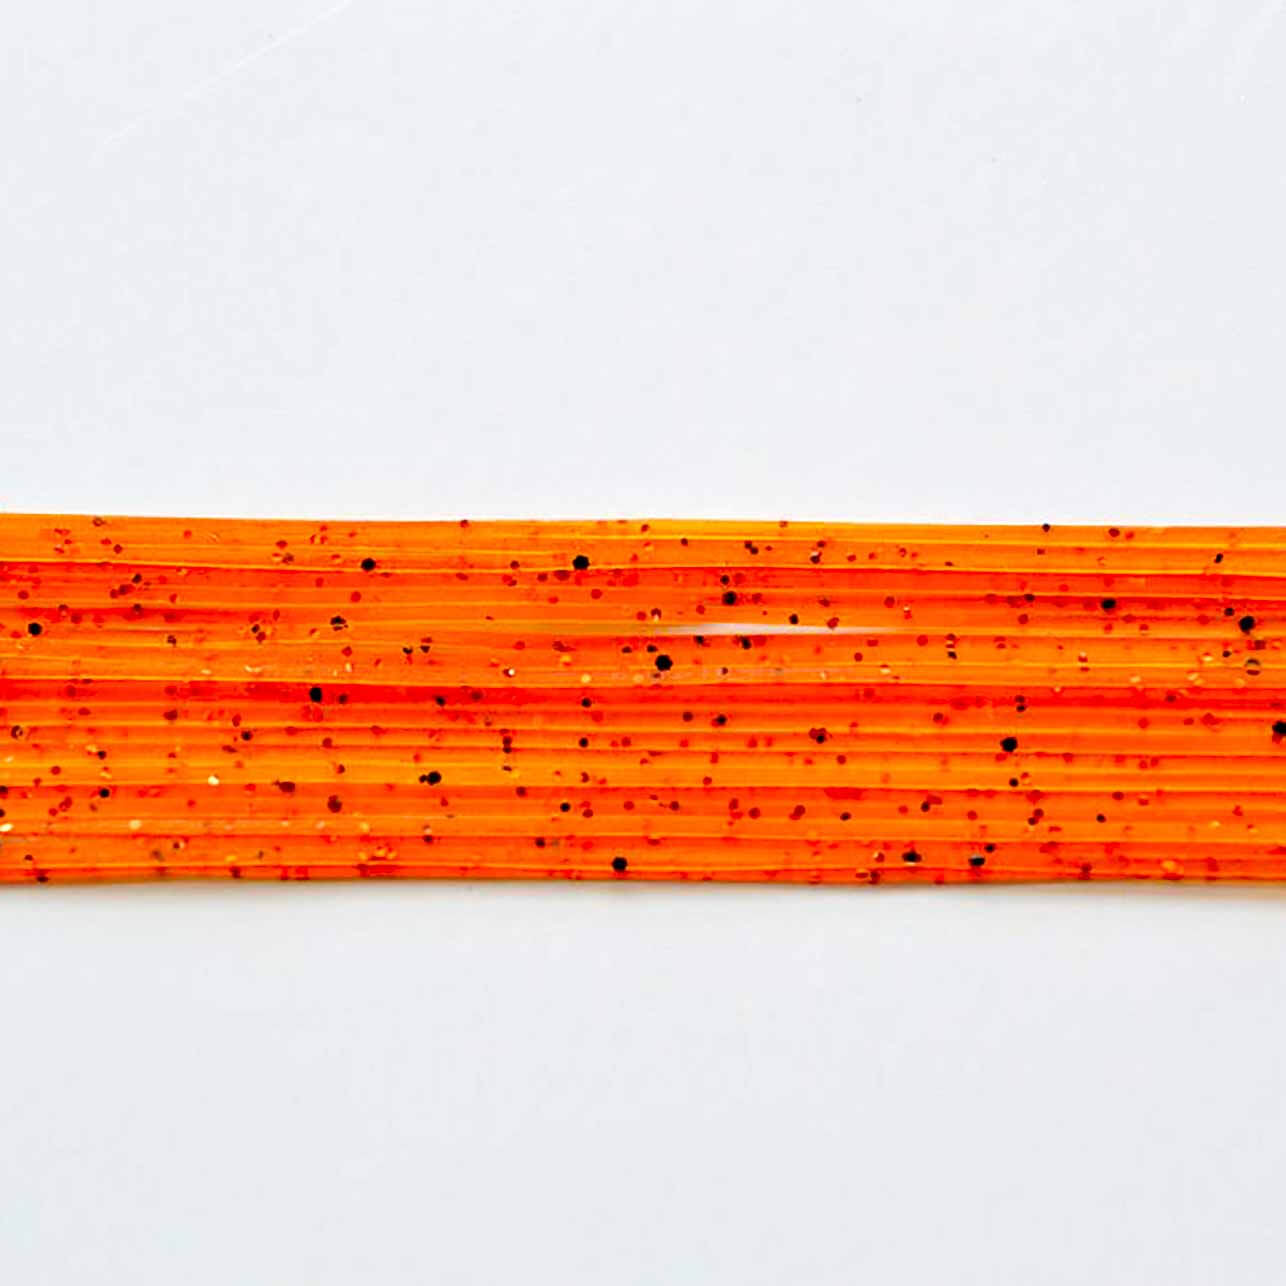 Orange with Orange and Black flake